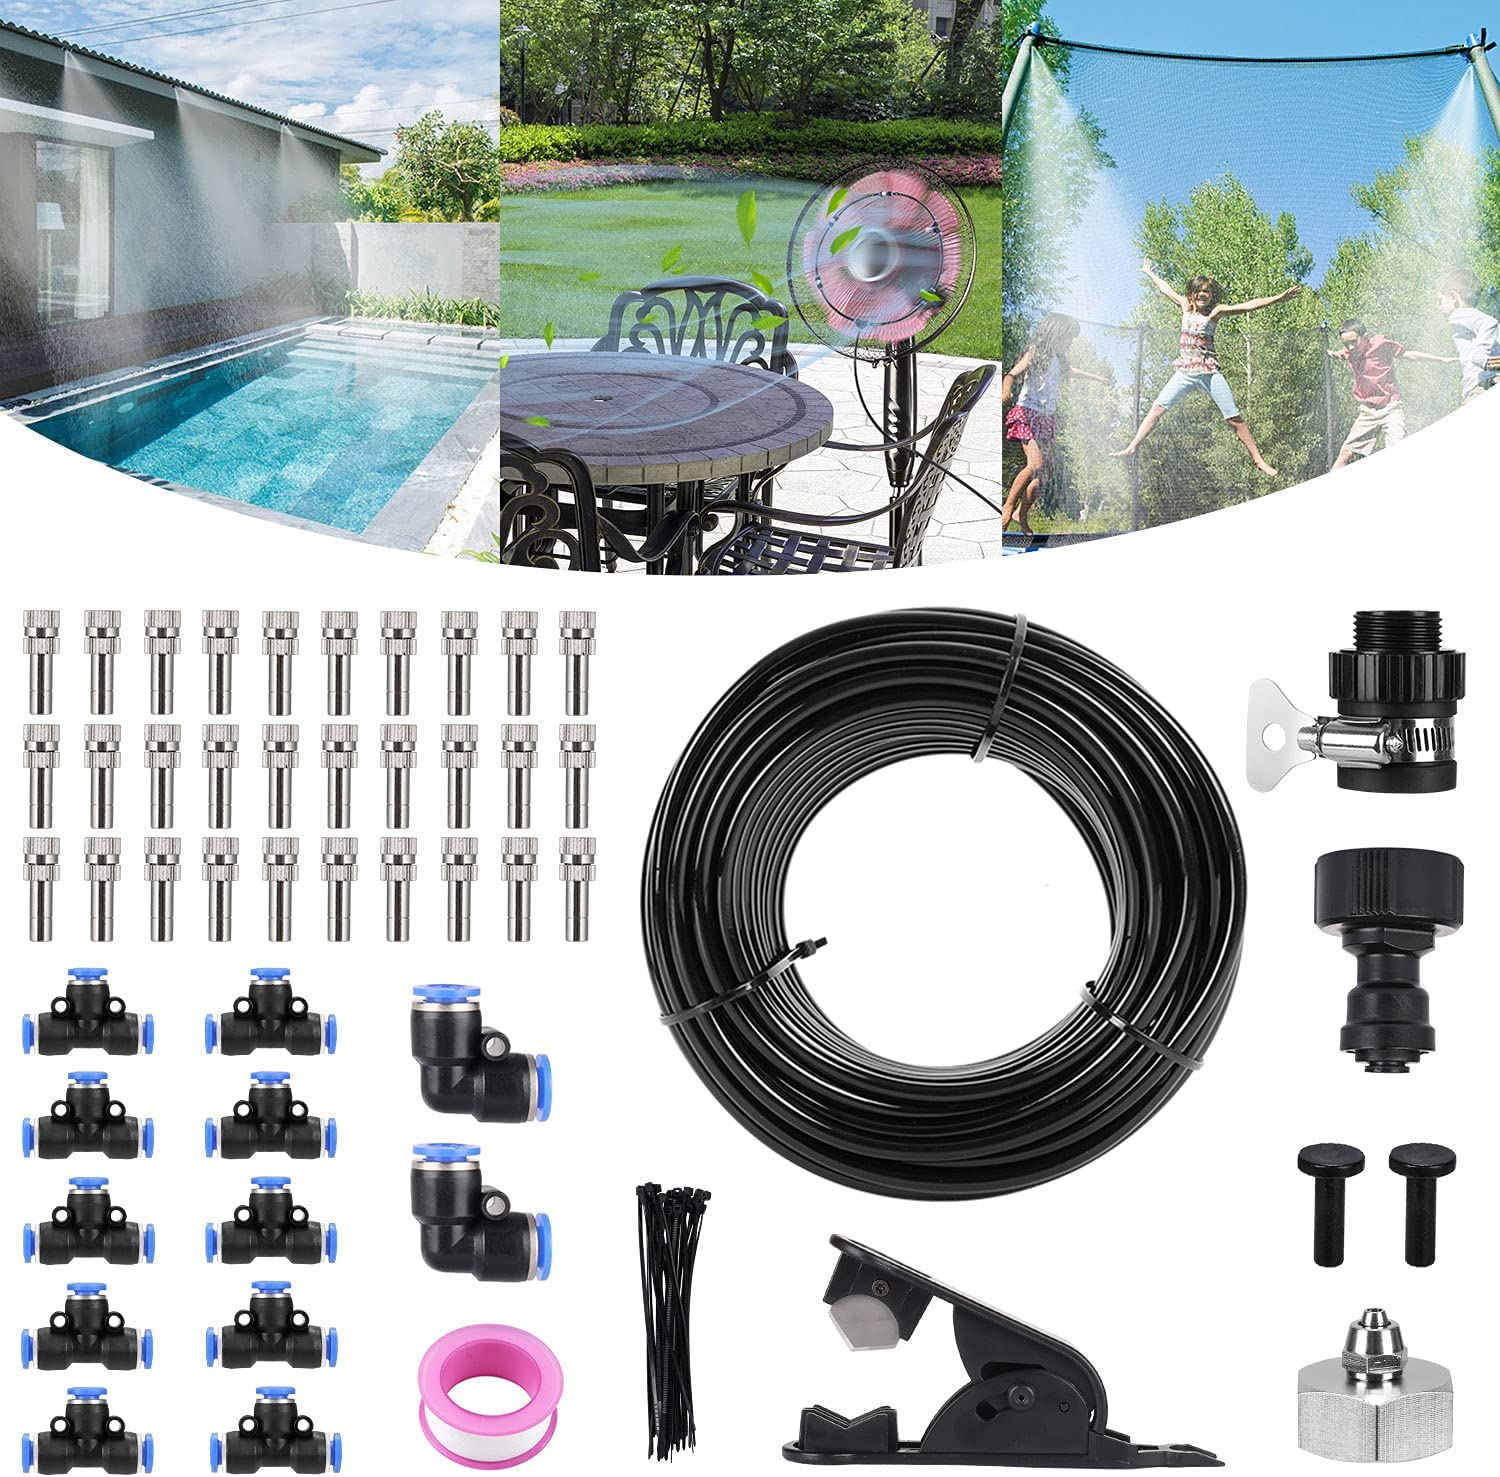 Bearbro Misting Cooling System for Patio,59FT (18M) Misting Line DIY Outdoor Mist Cooling Kit +24 Copper Metal Mist Nozzles +20 Tube Ties + a Connector(3/4